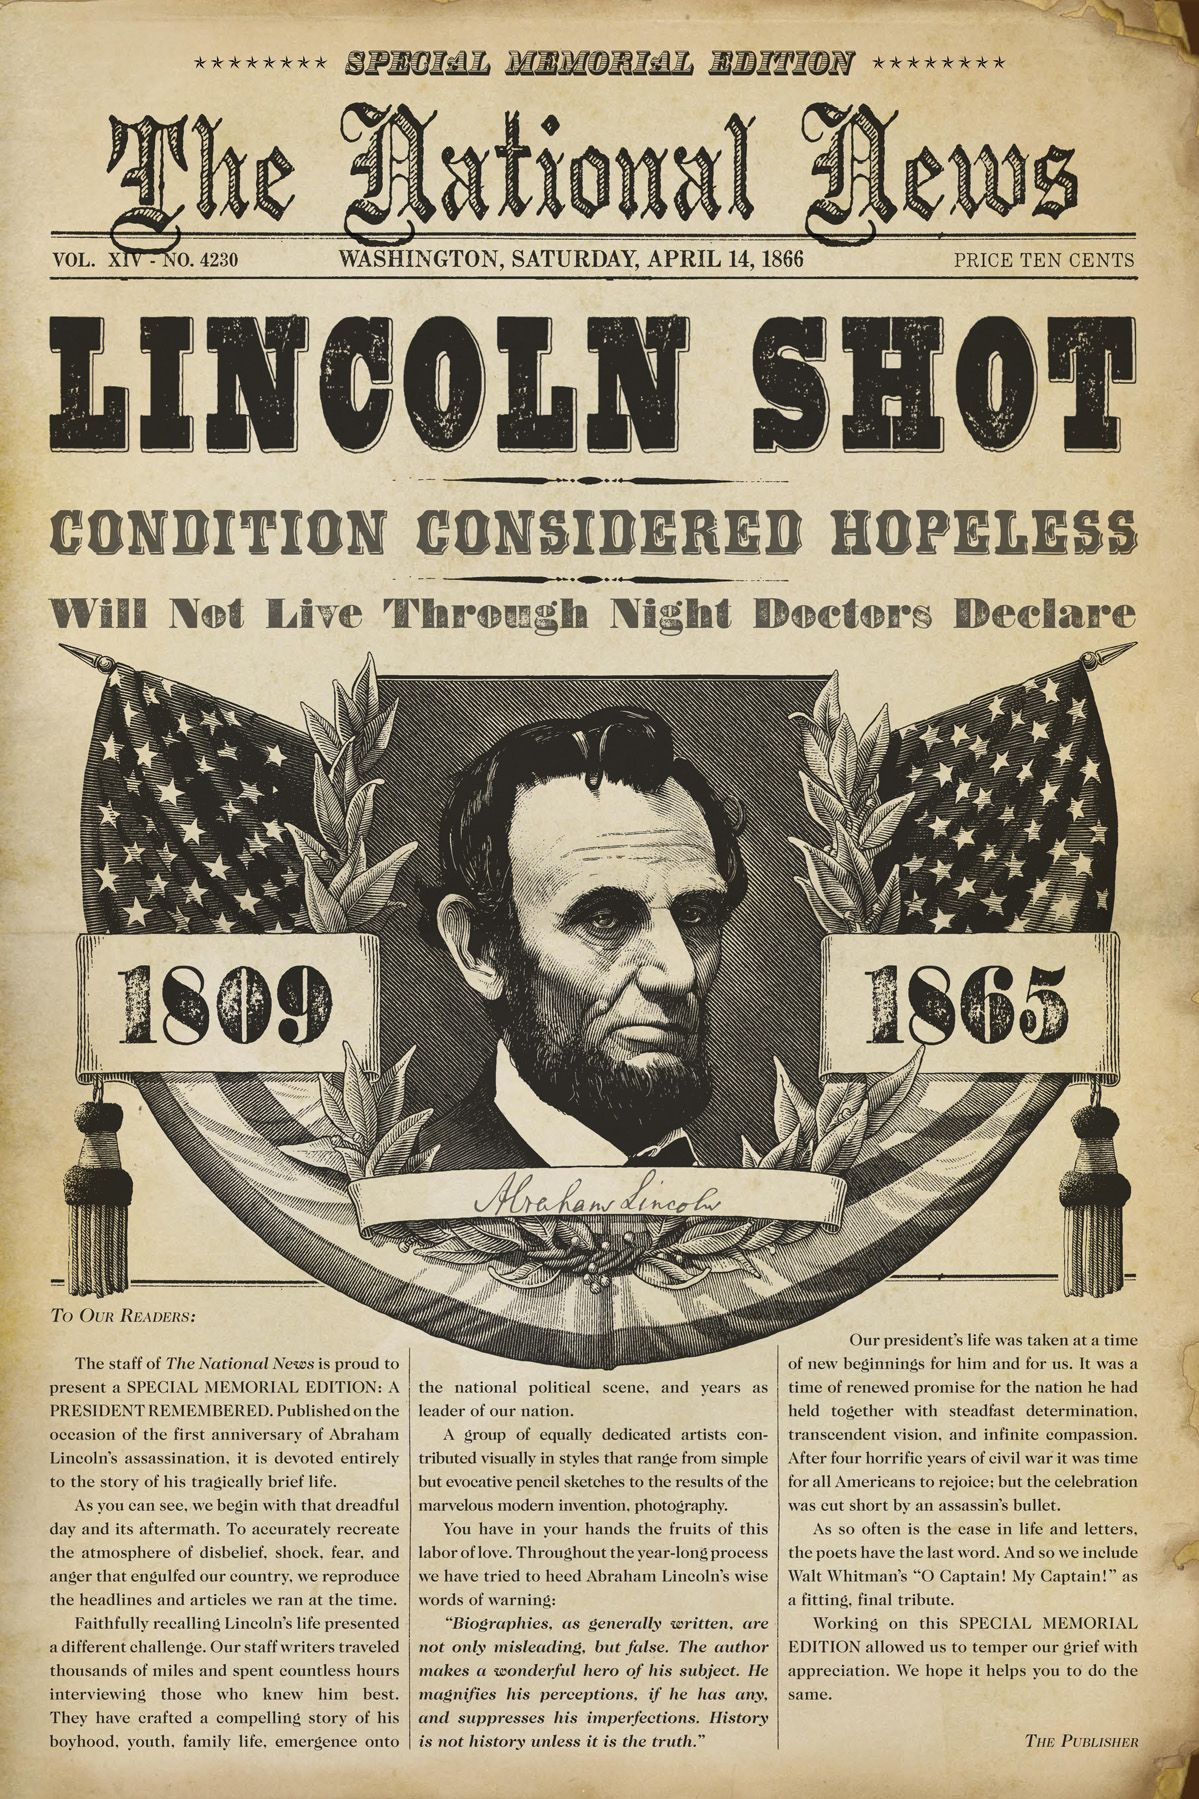 Abraham Lincoln Died As A Result Of A Conspiracy John